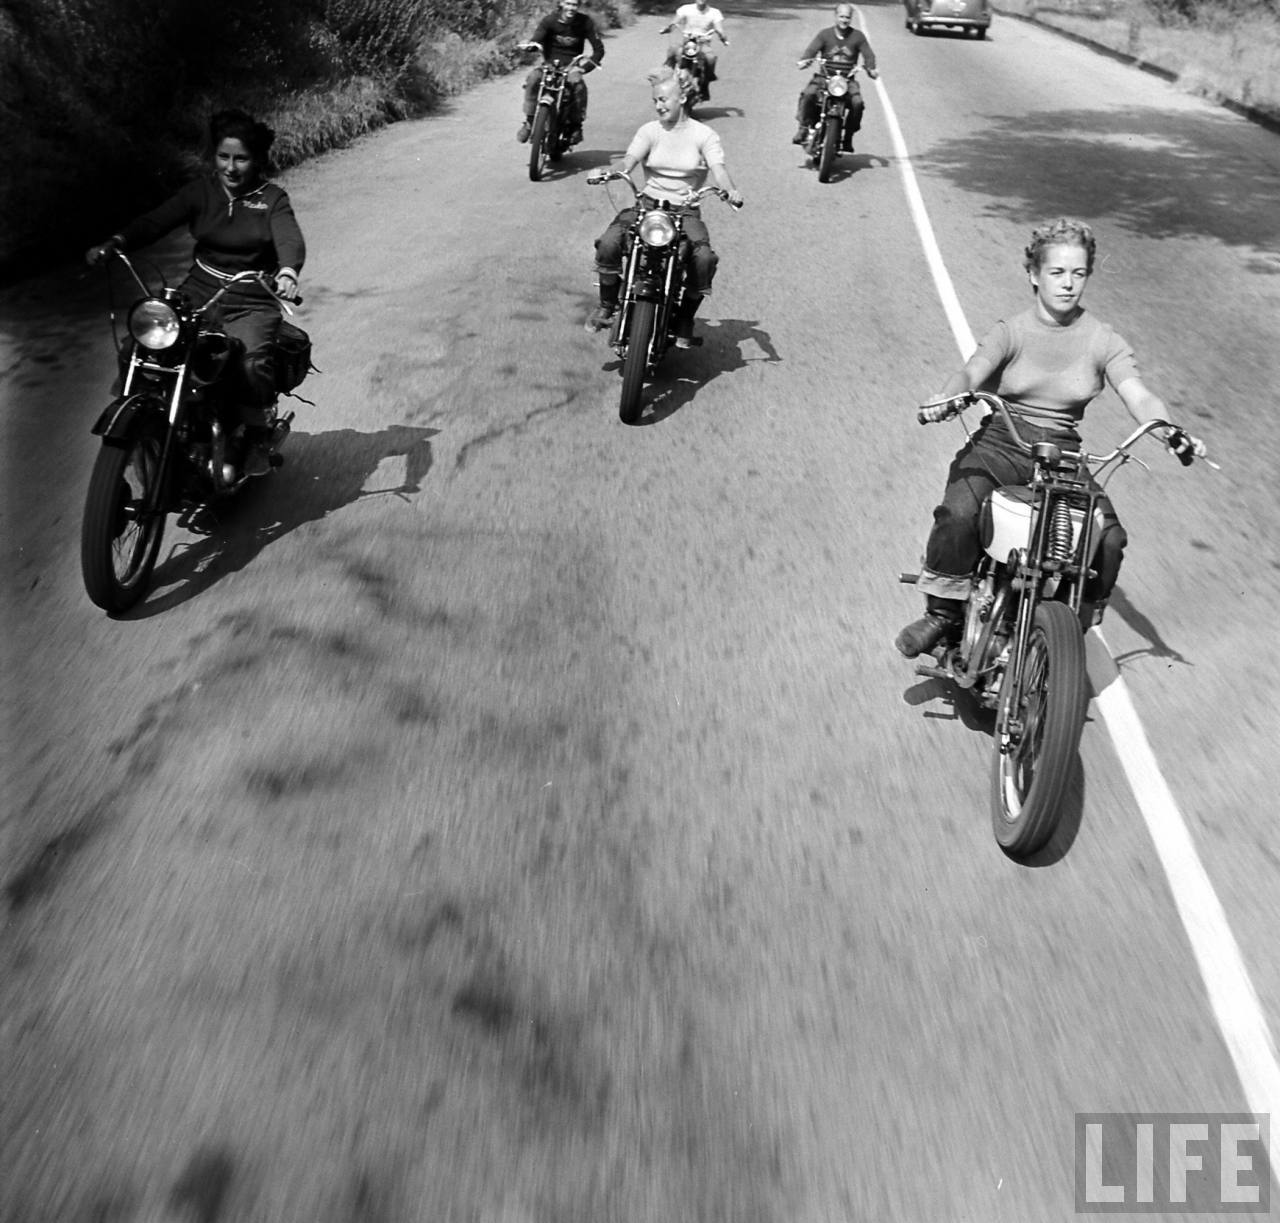 1940s Bike Girls Fascinating Photos Of Female Motorcyclists From